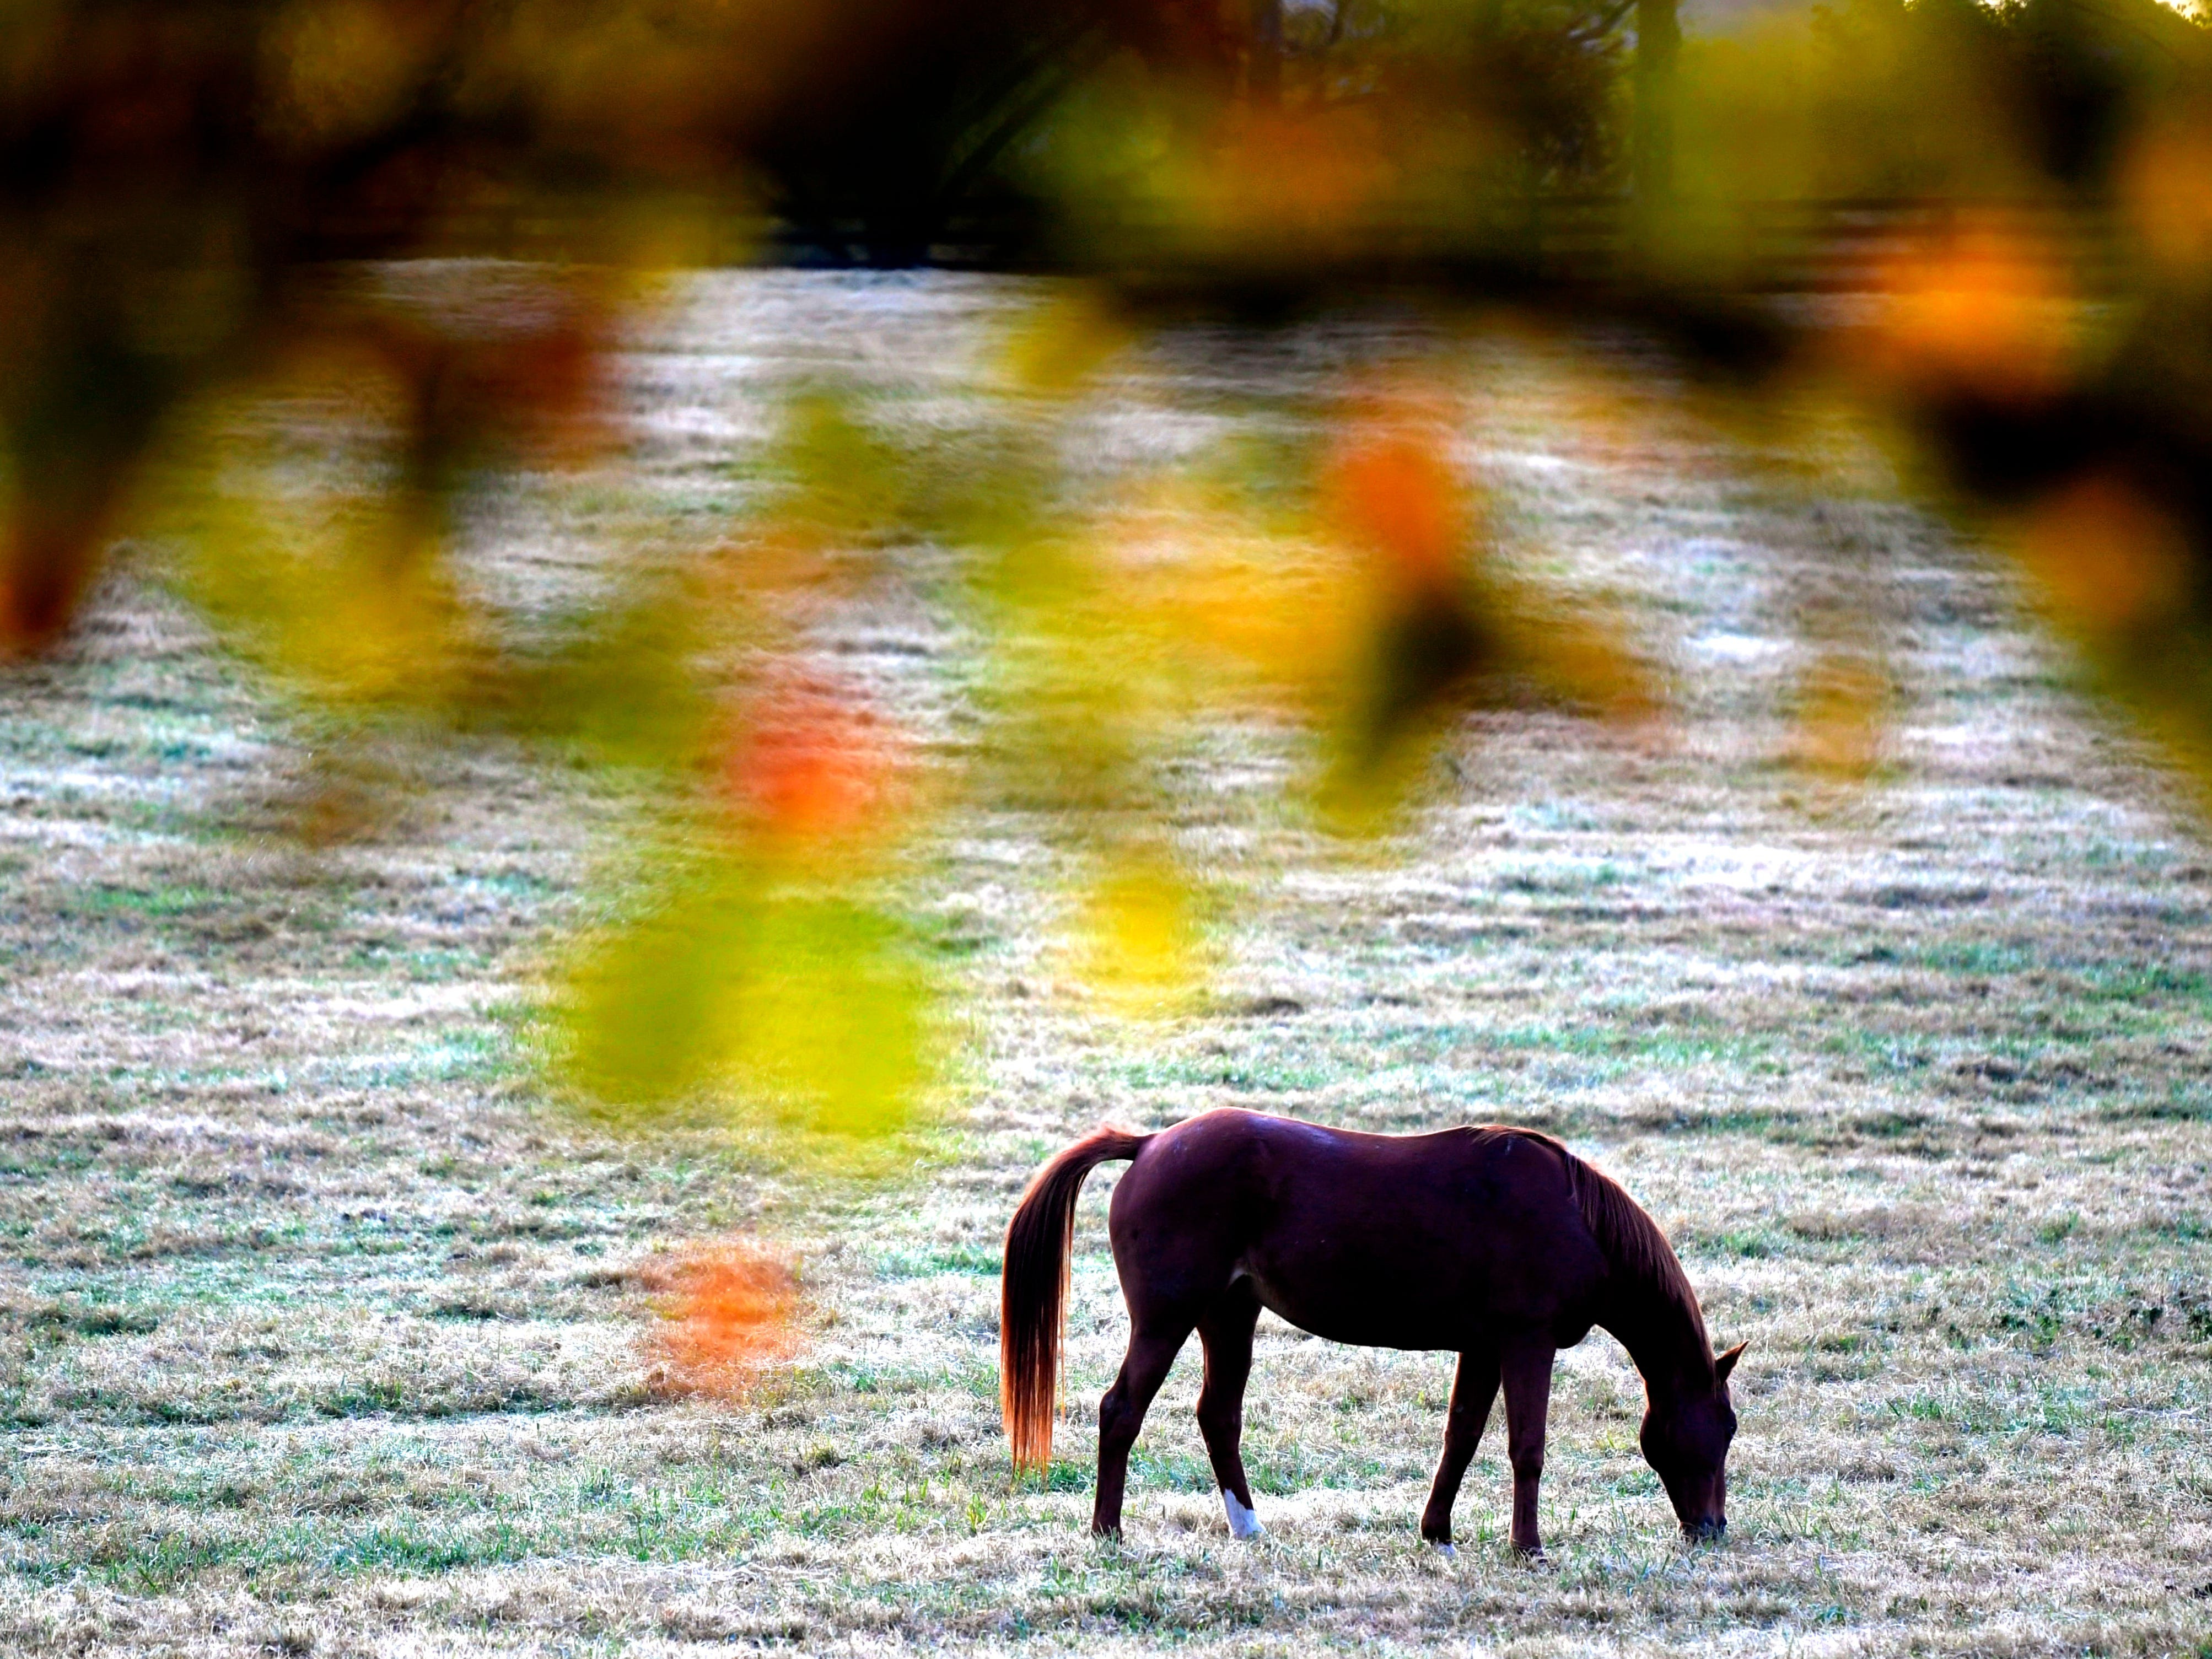 A horse gazed on a Franklin, Tenn. farm while some trees on the farm start to change colors on Tuesday, Oct 30, 2018.